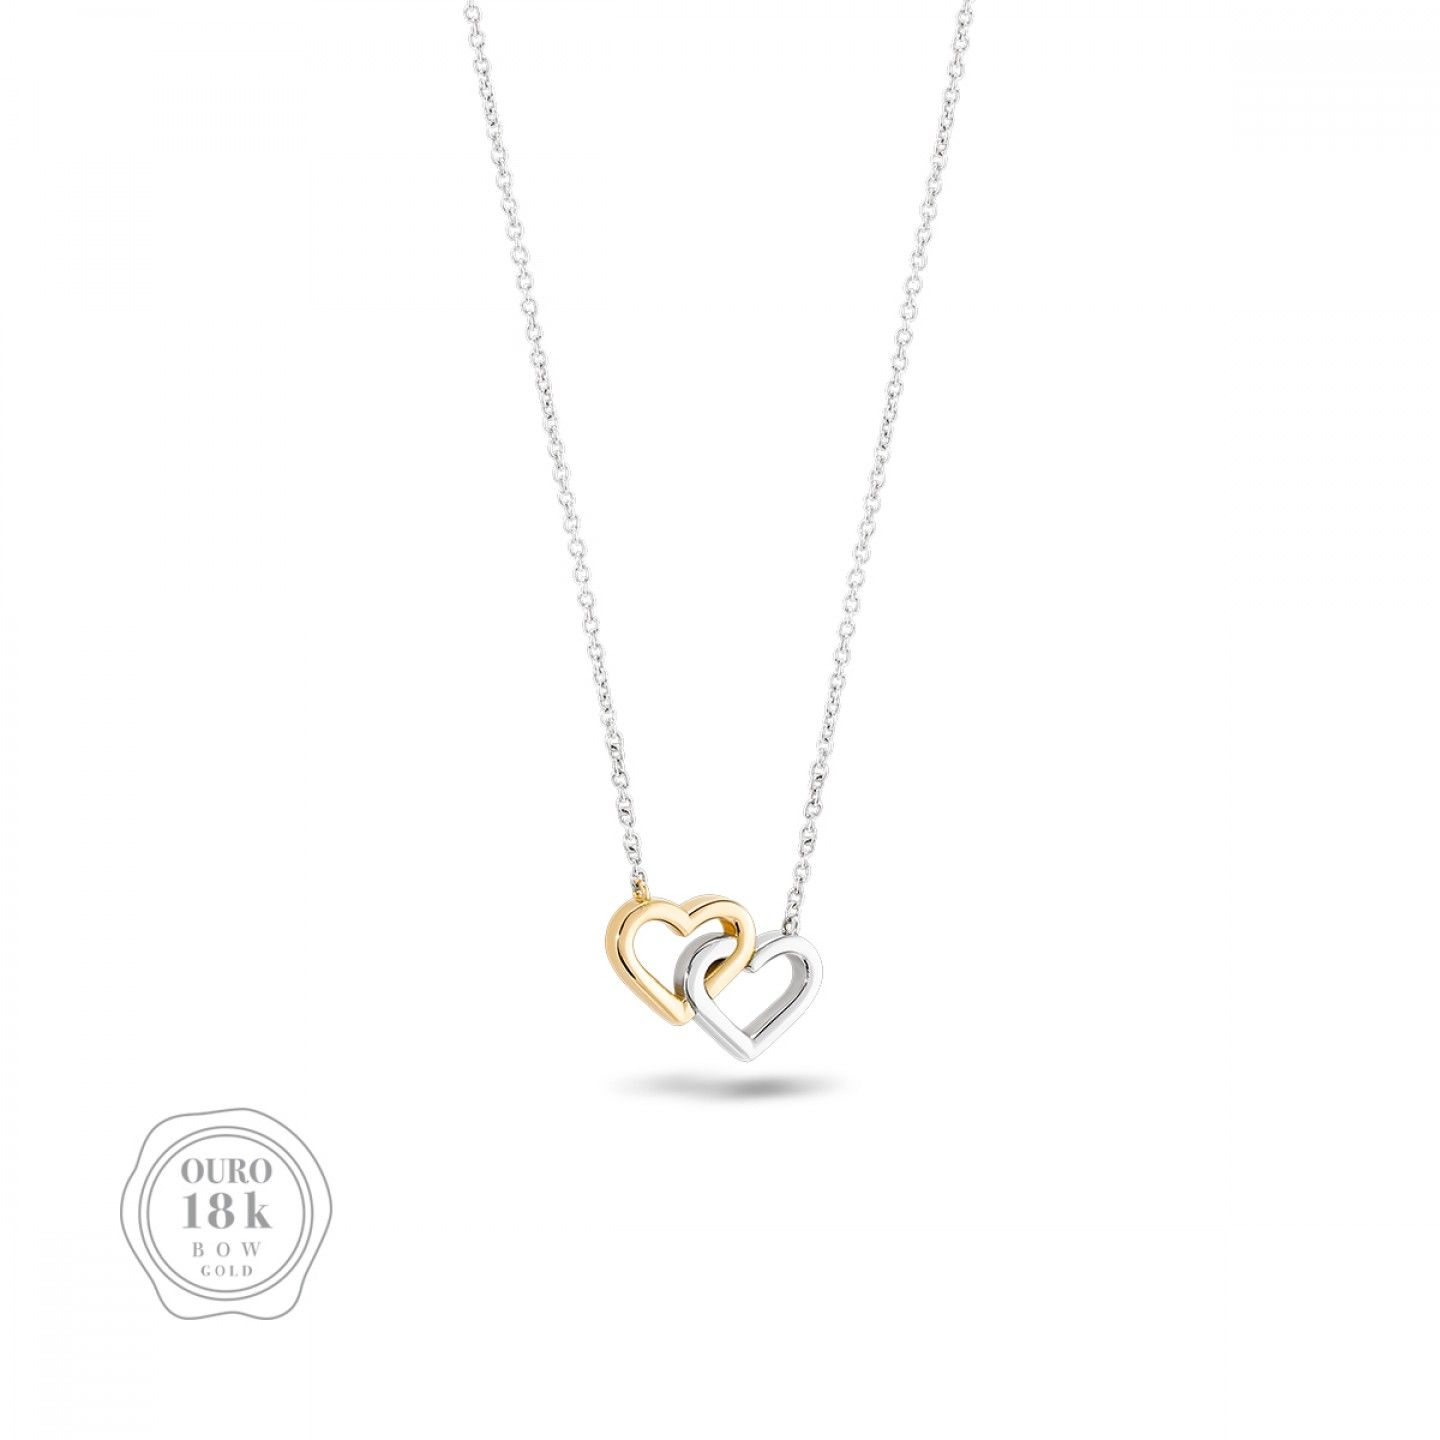 COLAR BOW GOLD TWO HEARTS I